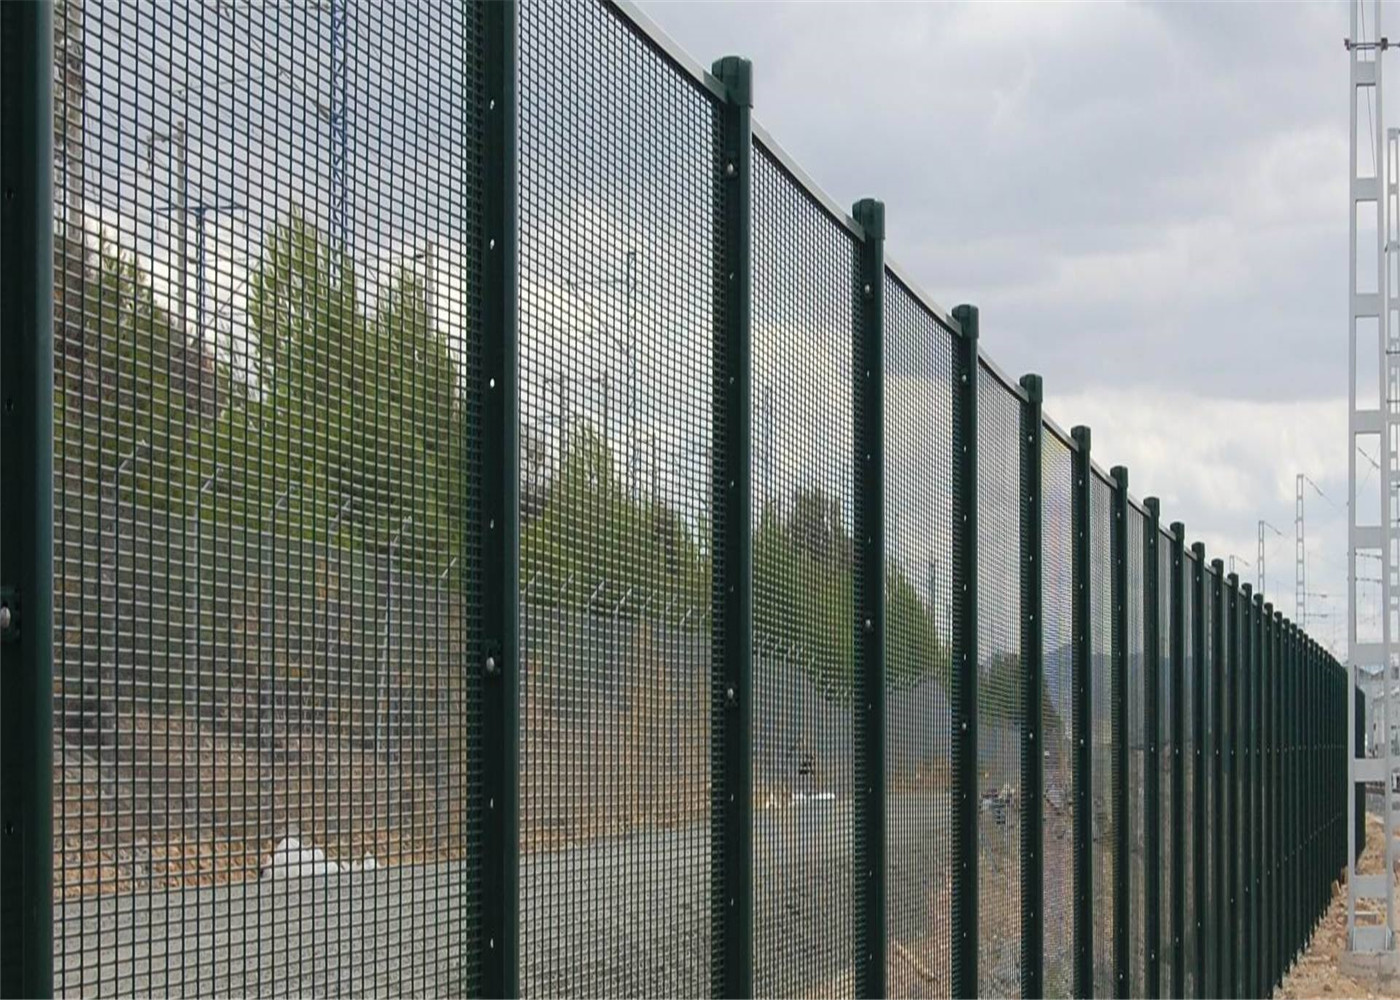 358 Mesh Security Fencing Anti Climb Anti Cut Fence